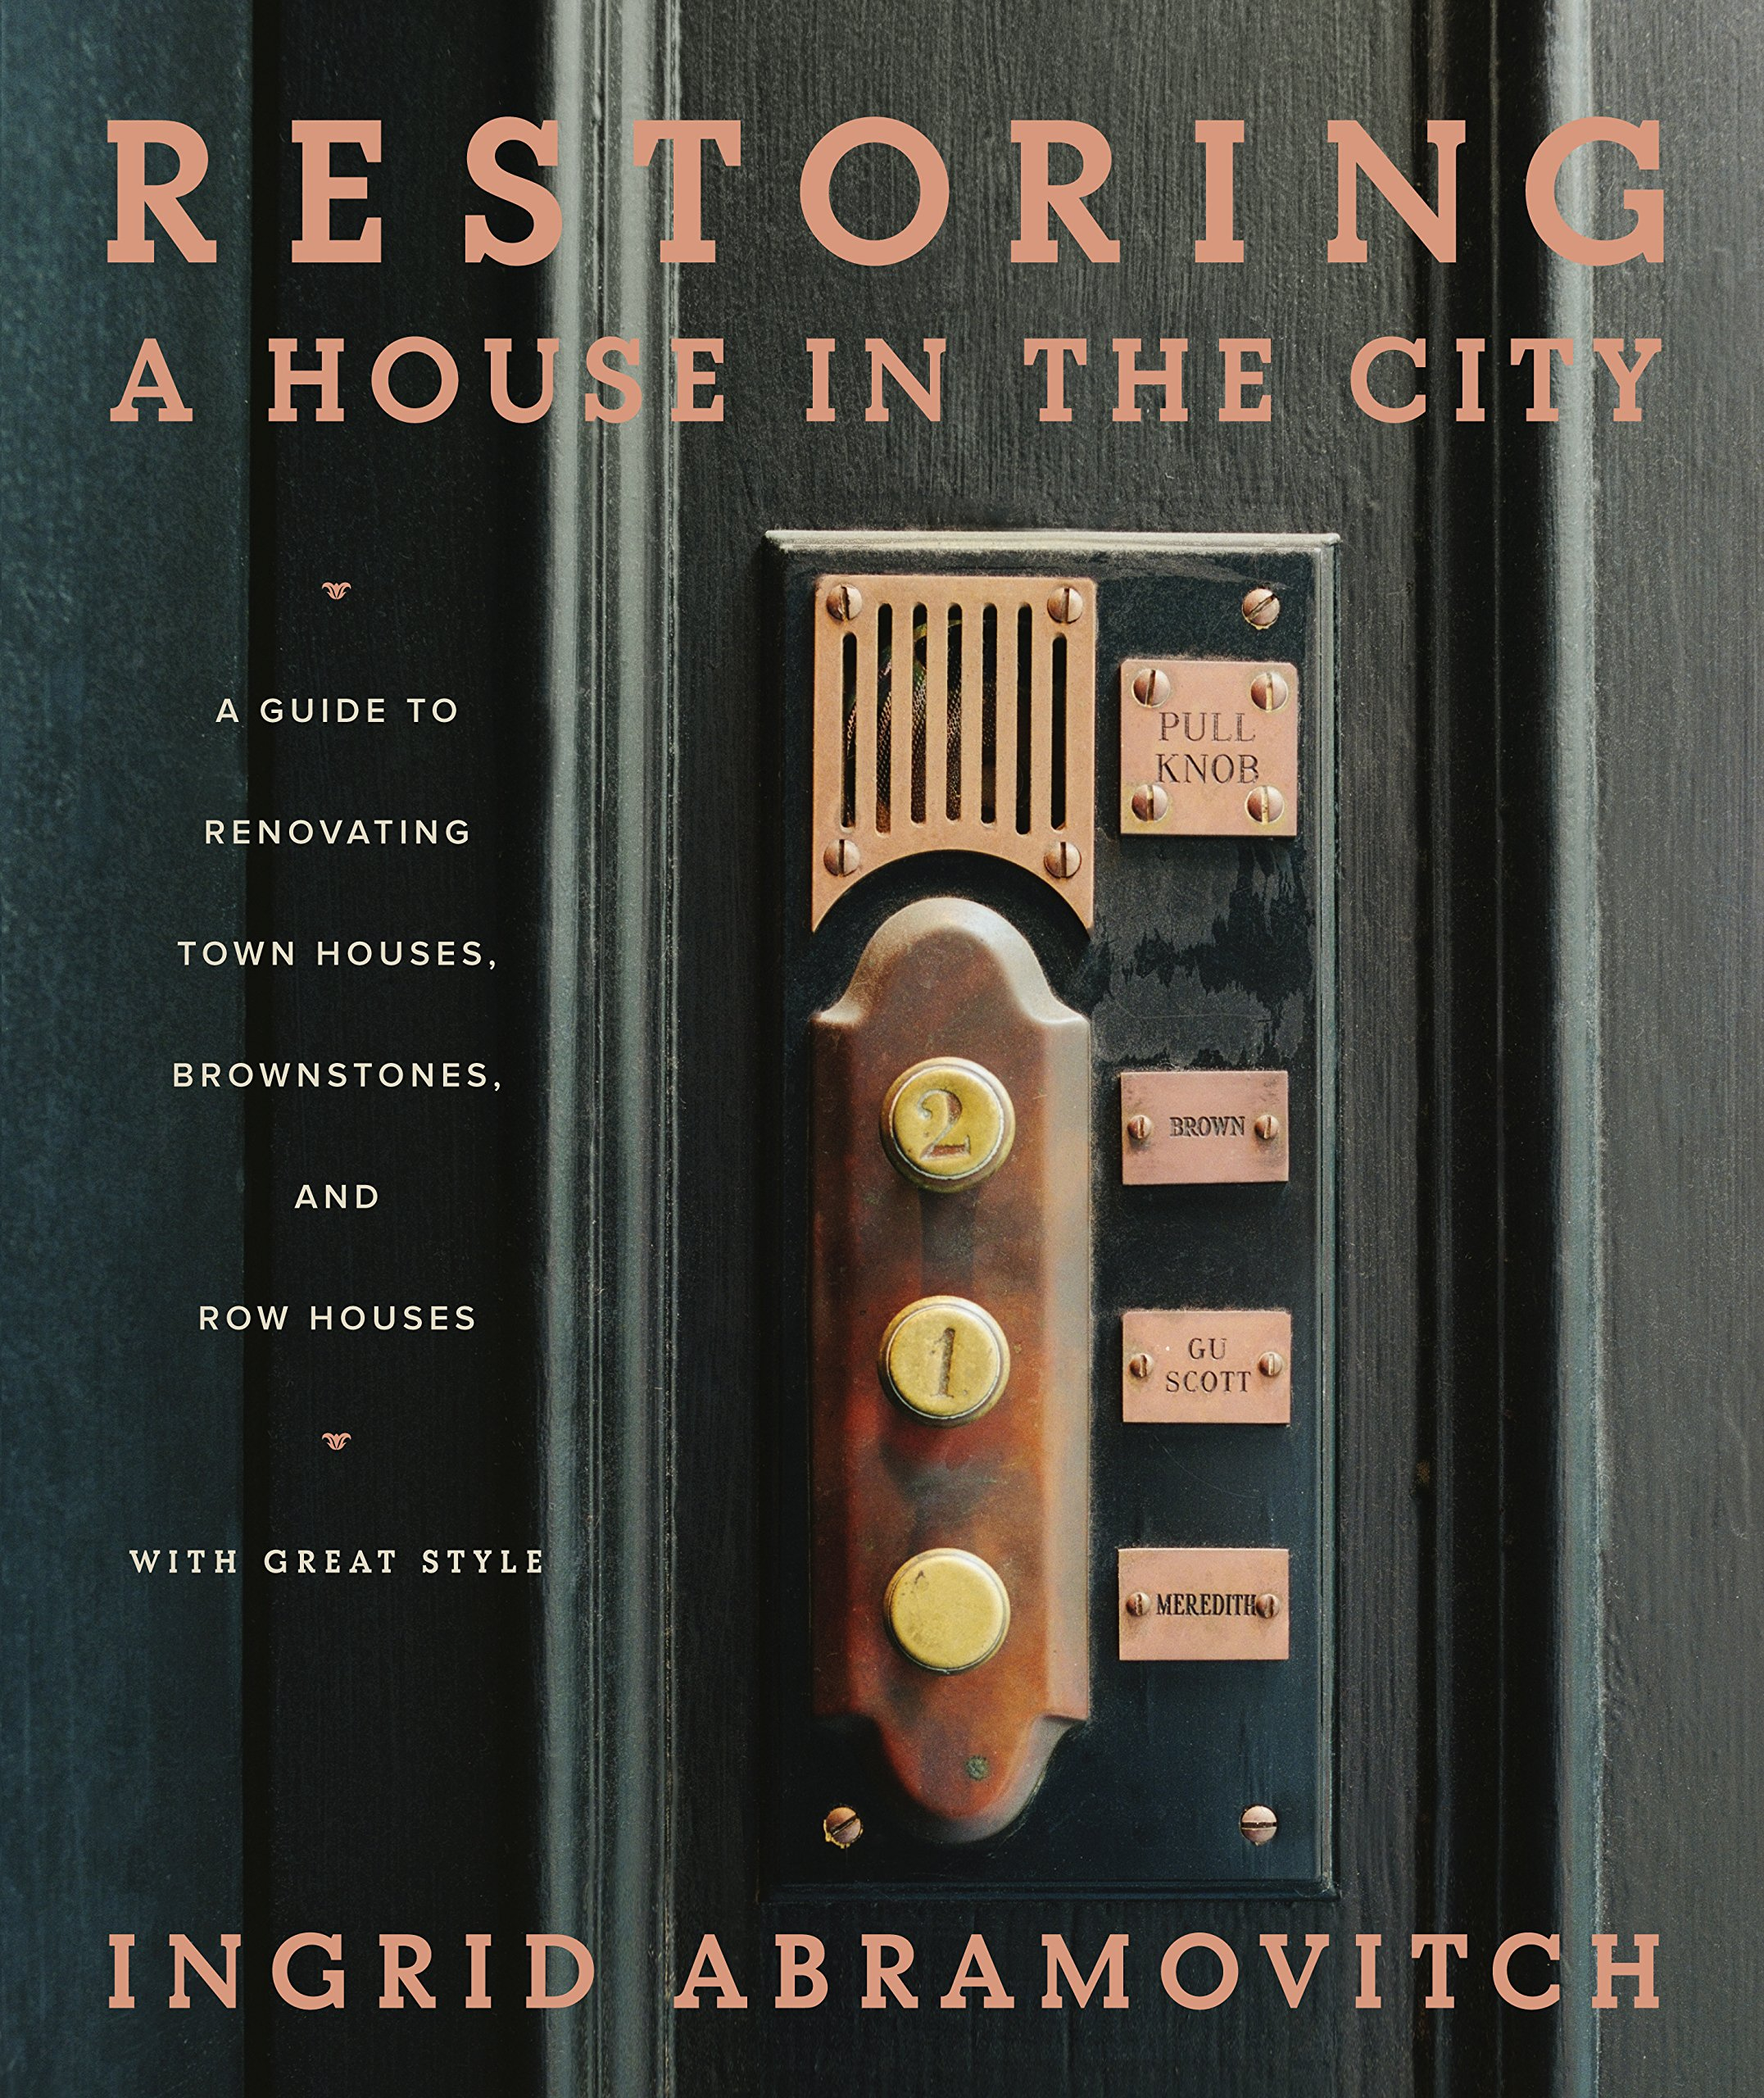 Restoring a House in the City: A Guide to Renovating Townhouses, Brownstones, and Row Houses wth Great Style by Workman